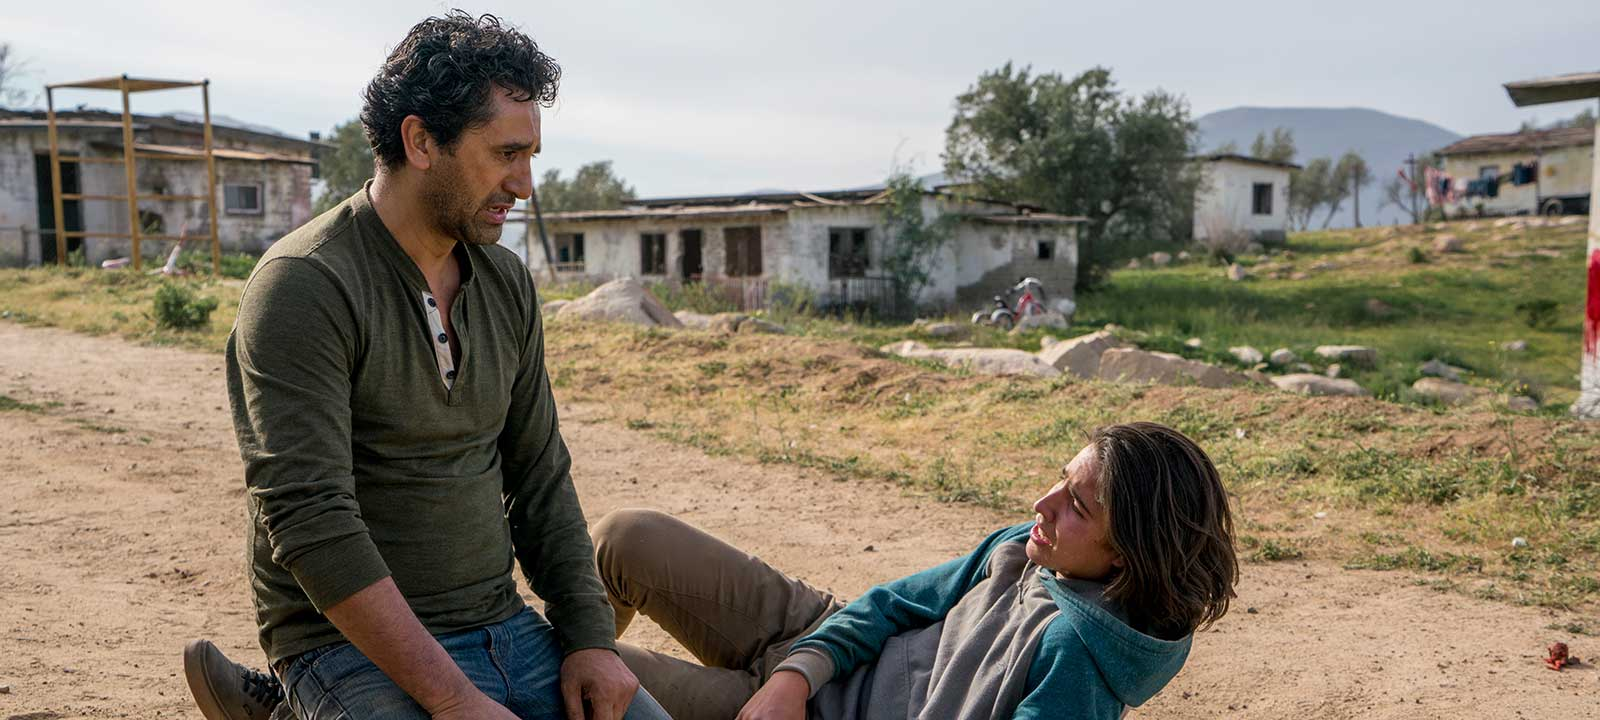 fear-the-walking-dead-episode-207-travis-cutris-interview-800×600